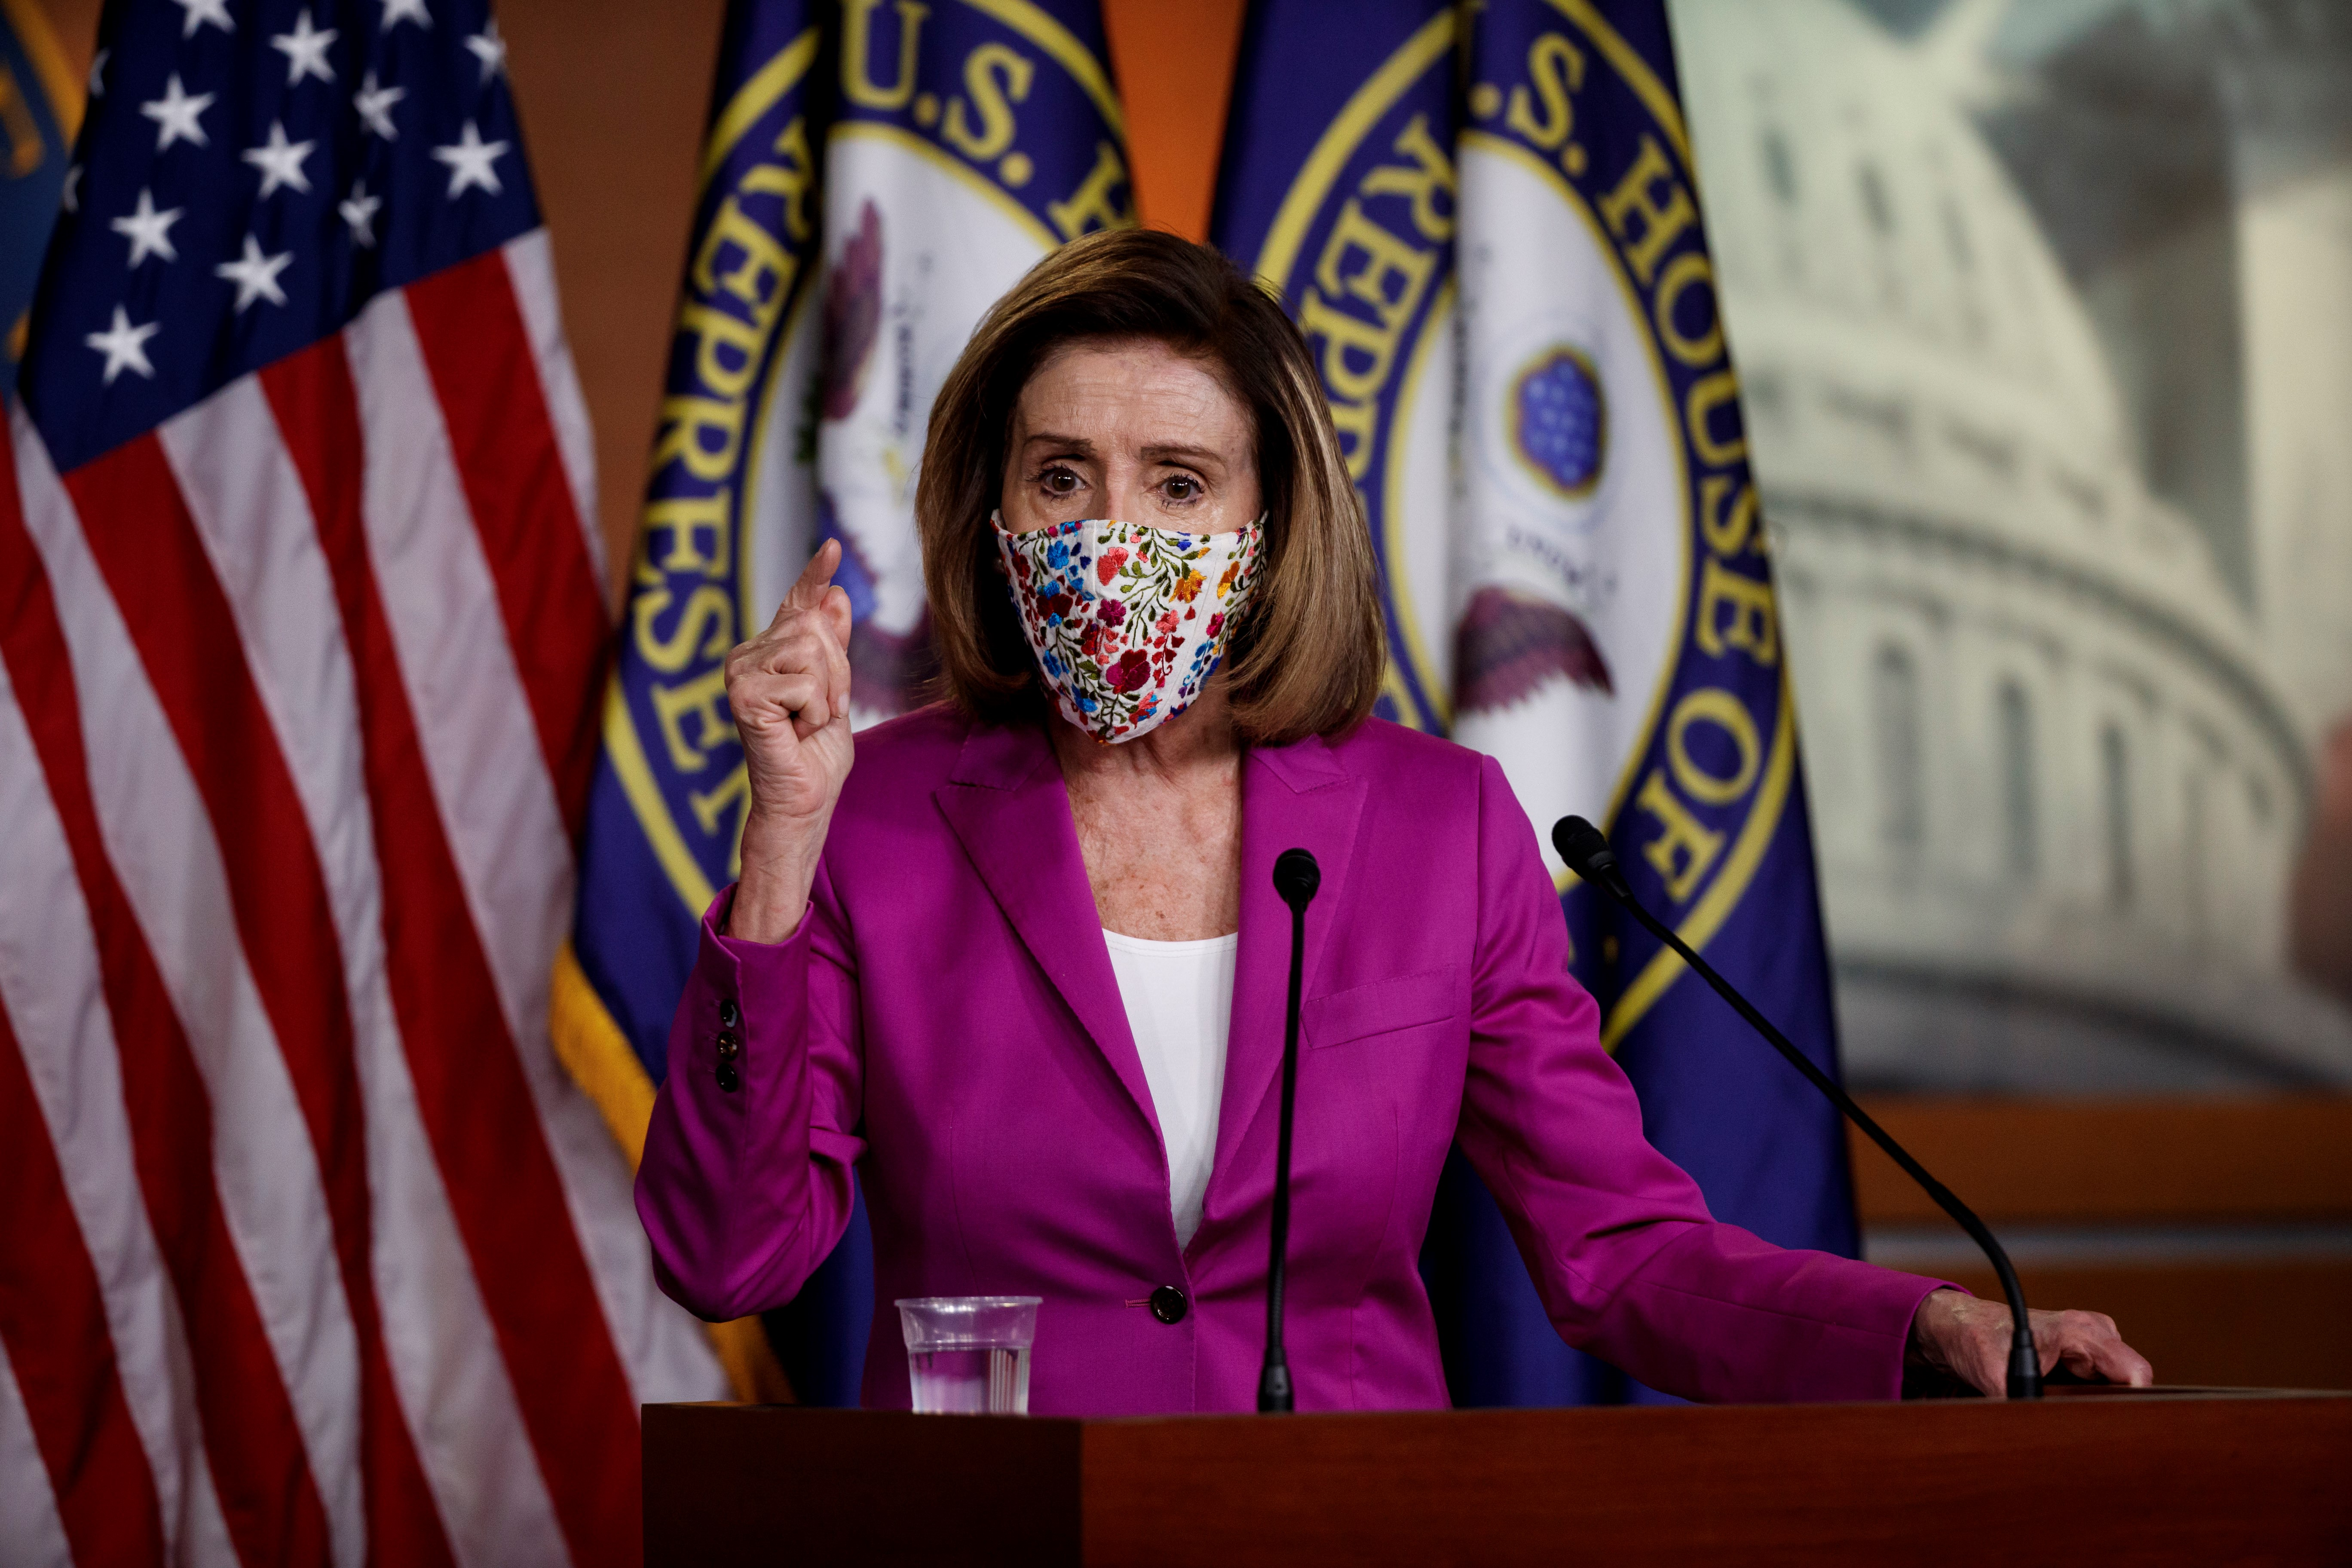 Pelosi, in a dark pink suit, white blouse, and colorful cloth mask, speaks emphatically into a microphone in front of the US and House of Representatives flags.